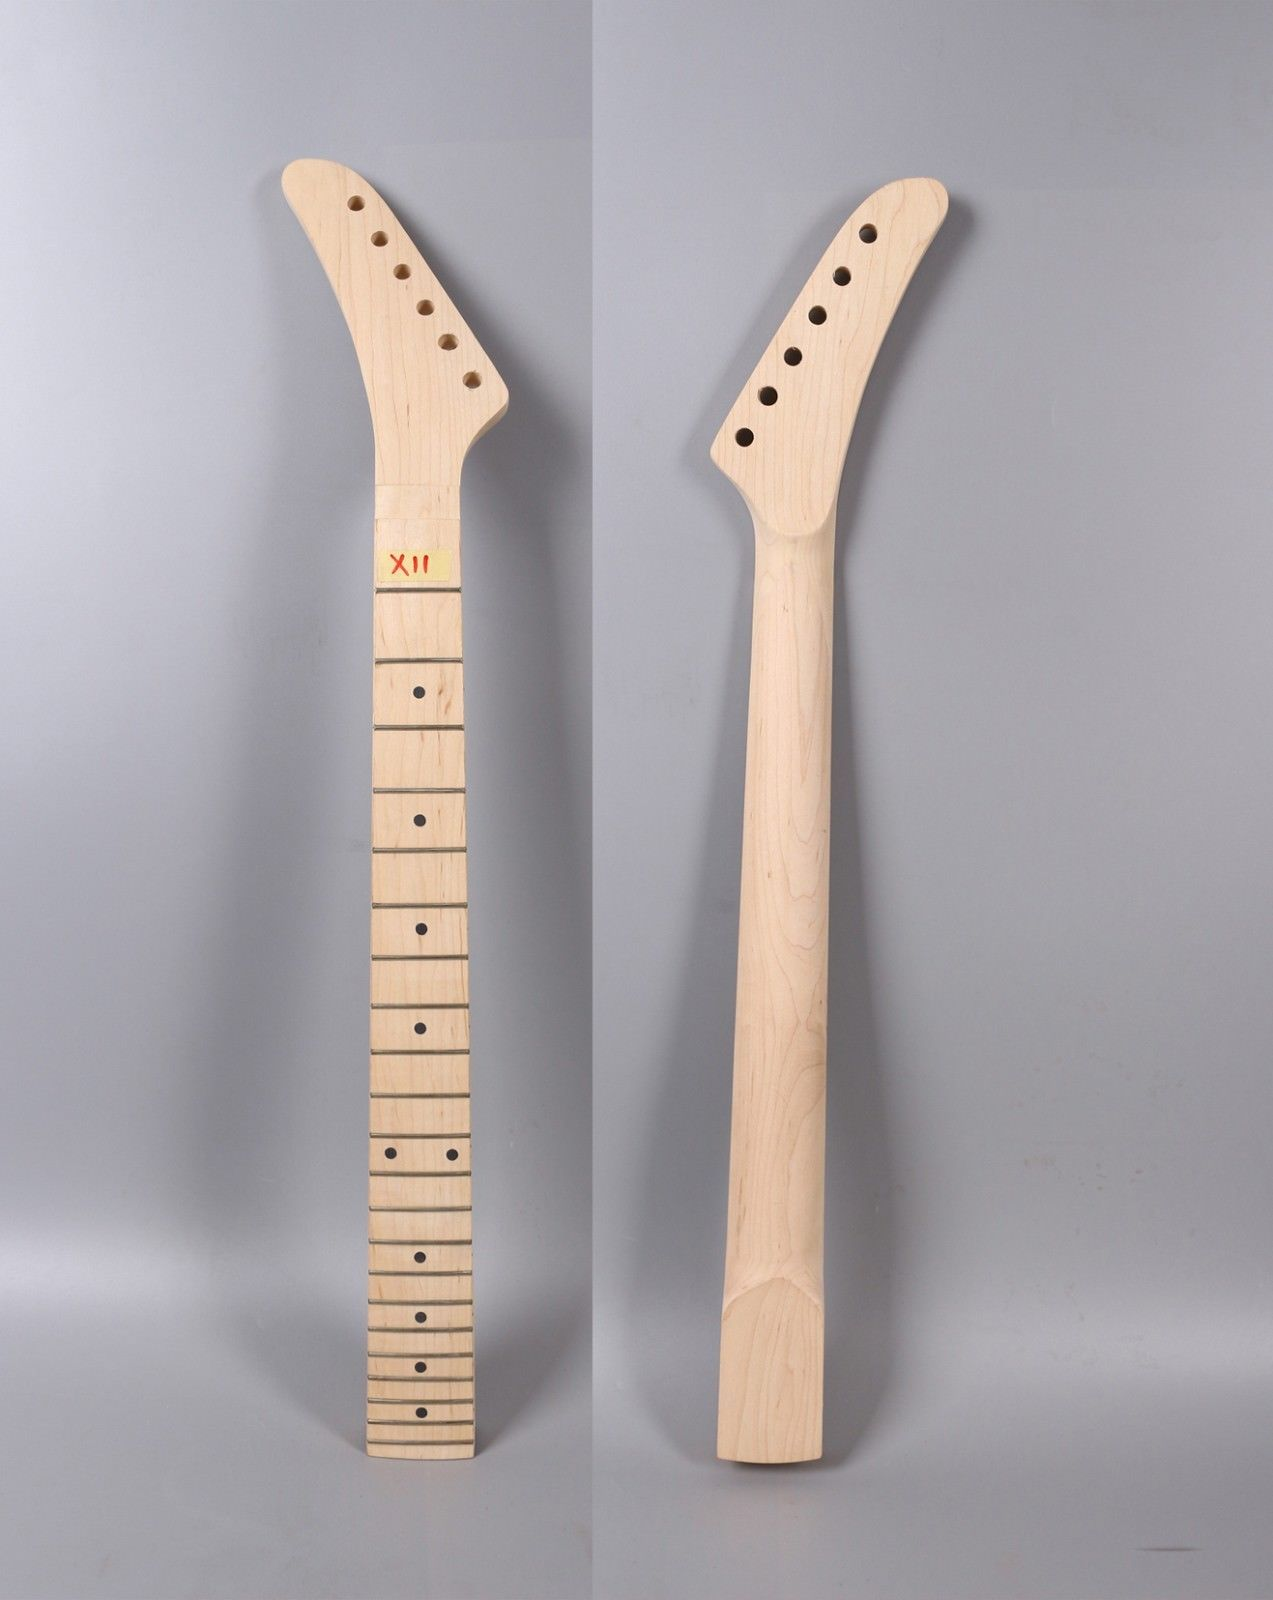 Maple Guitar Neck 22 Fret 25.5 Inch Locking Nut banana Style Unfinished Electric Guitar Replacement Left Hand one tl electric guitar neck 25 5 inch 22 fret maple made and rosewood fingerboard bindding also have 21 fret